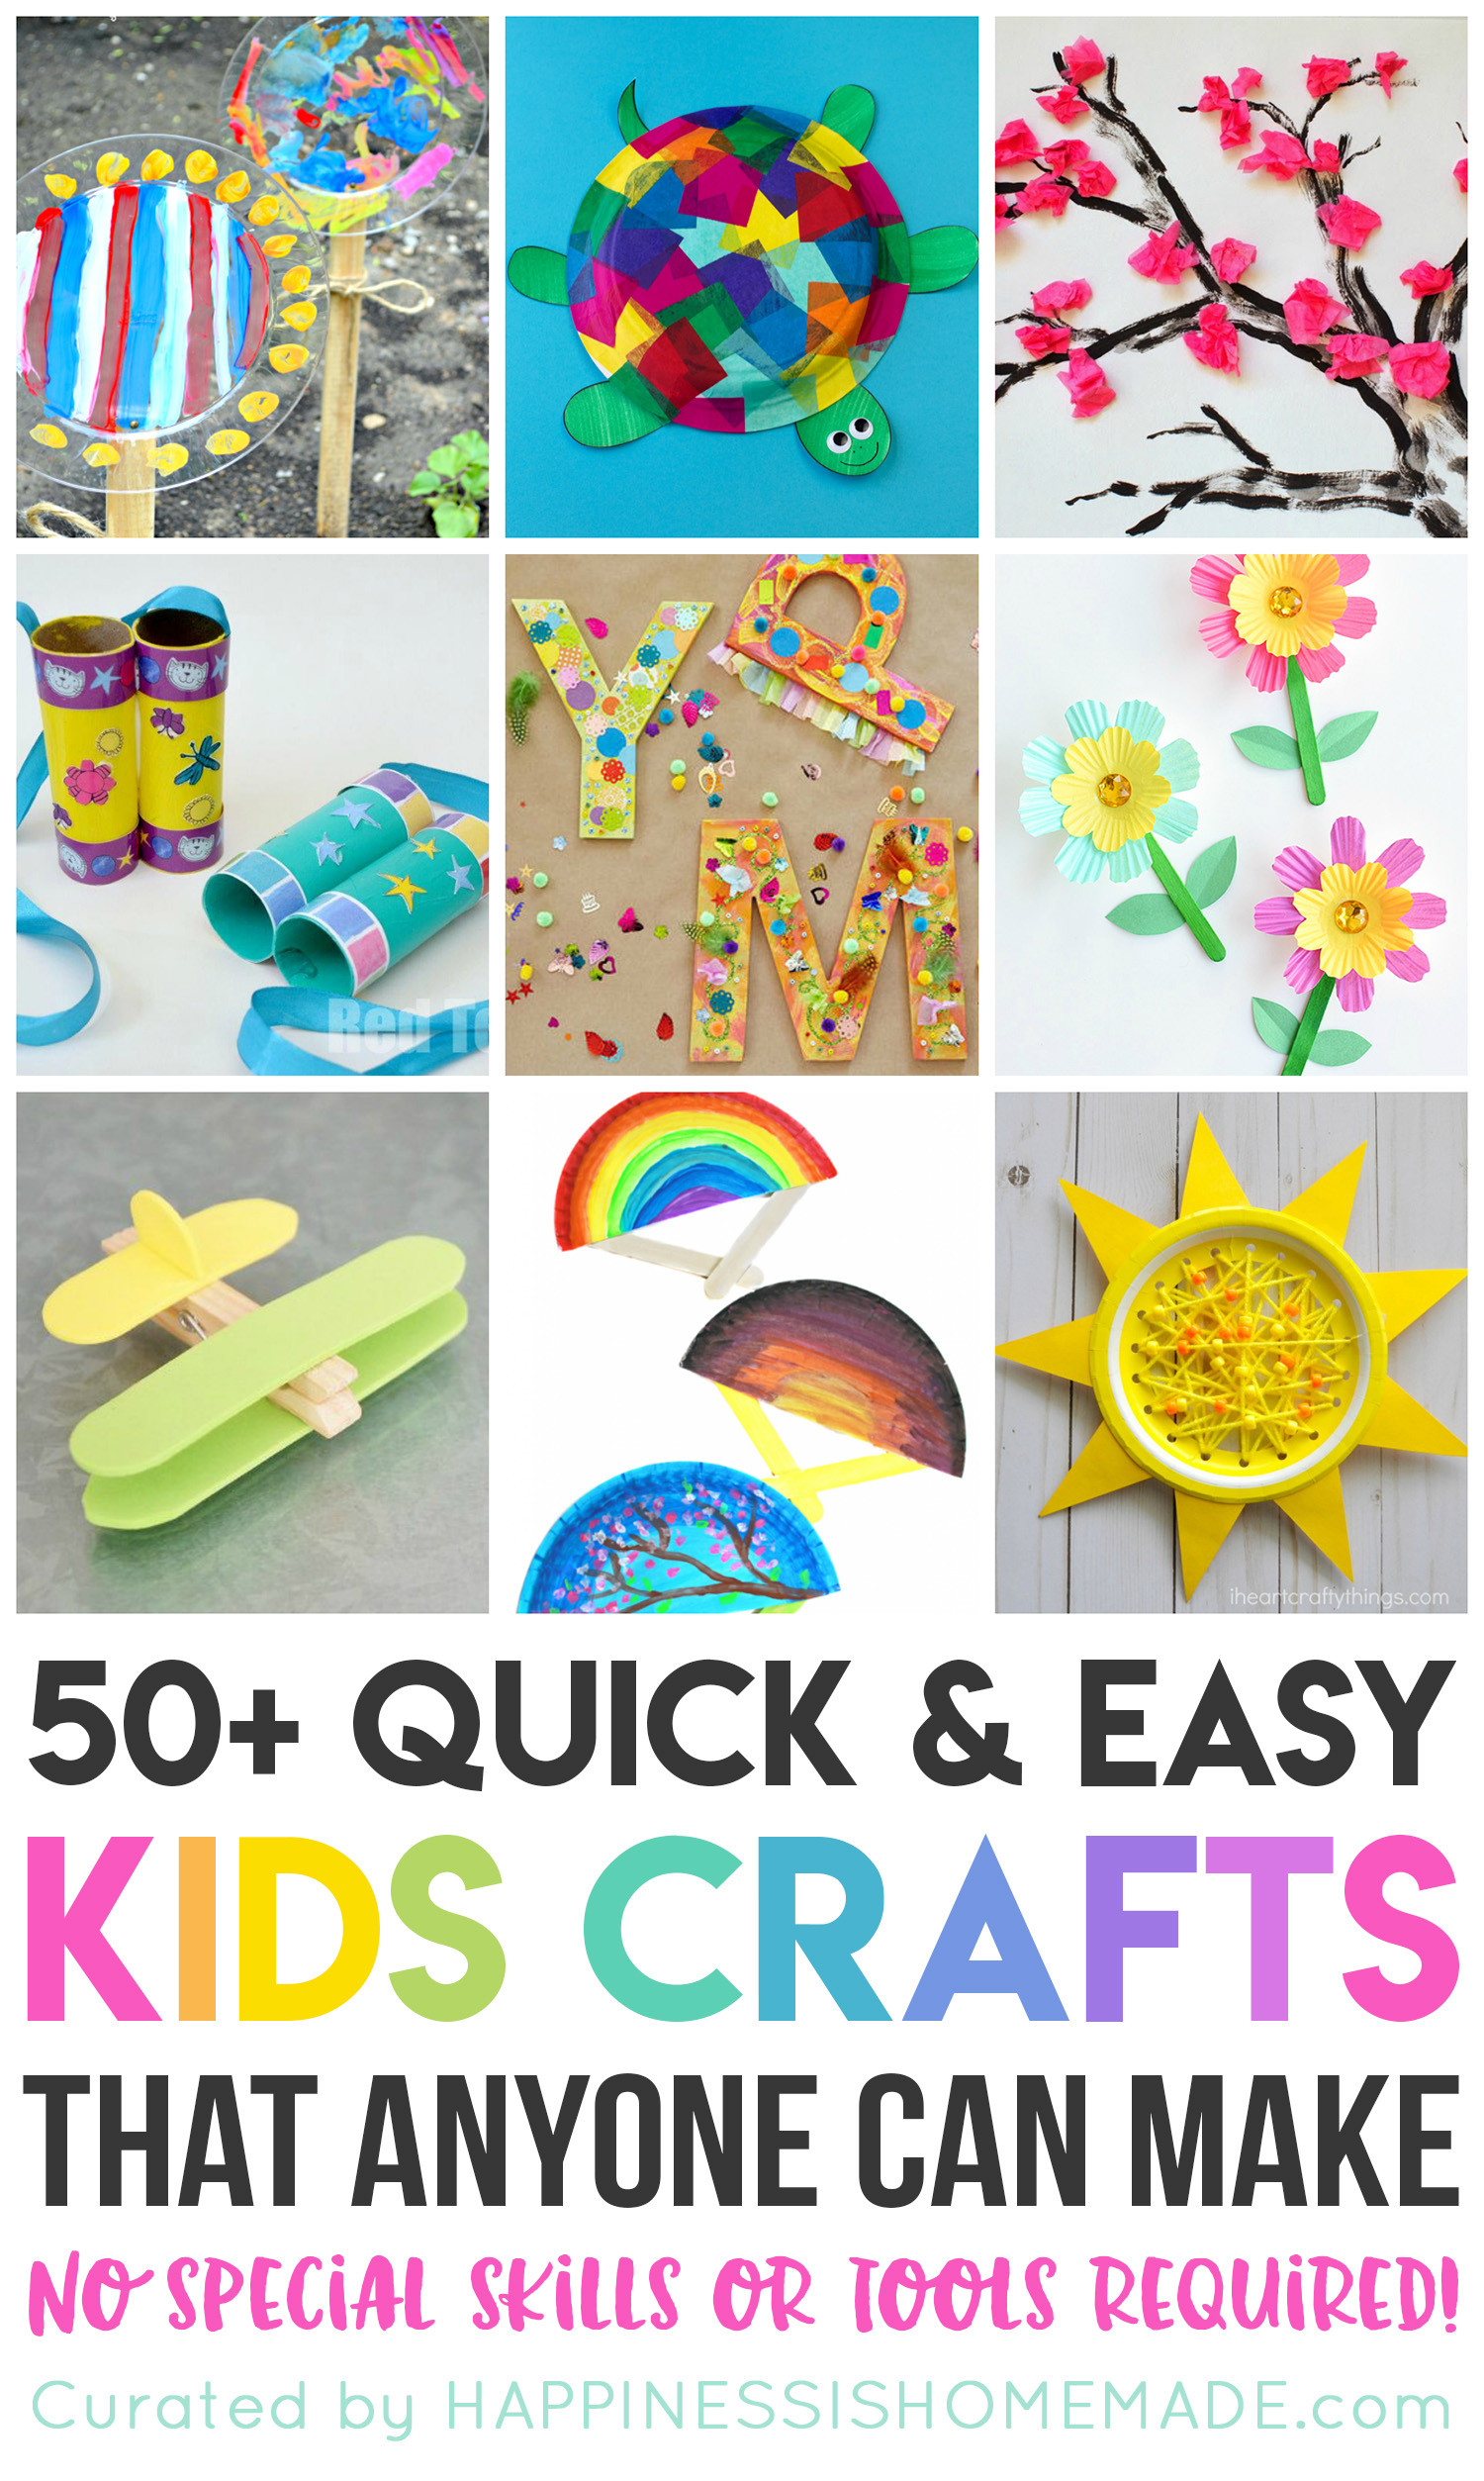 Best ideas about Arts And Crafts Ideas For Kids . Save or Pin Quick & Easy Halloween Crafts for Kids Happiness is Homemade Now.